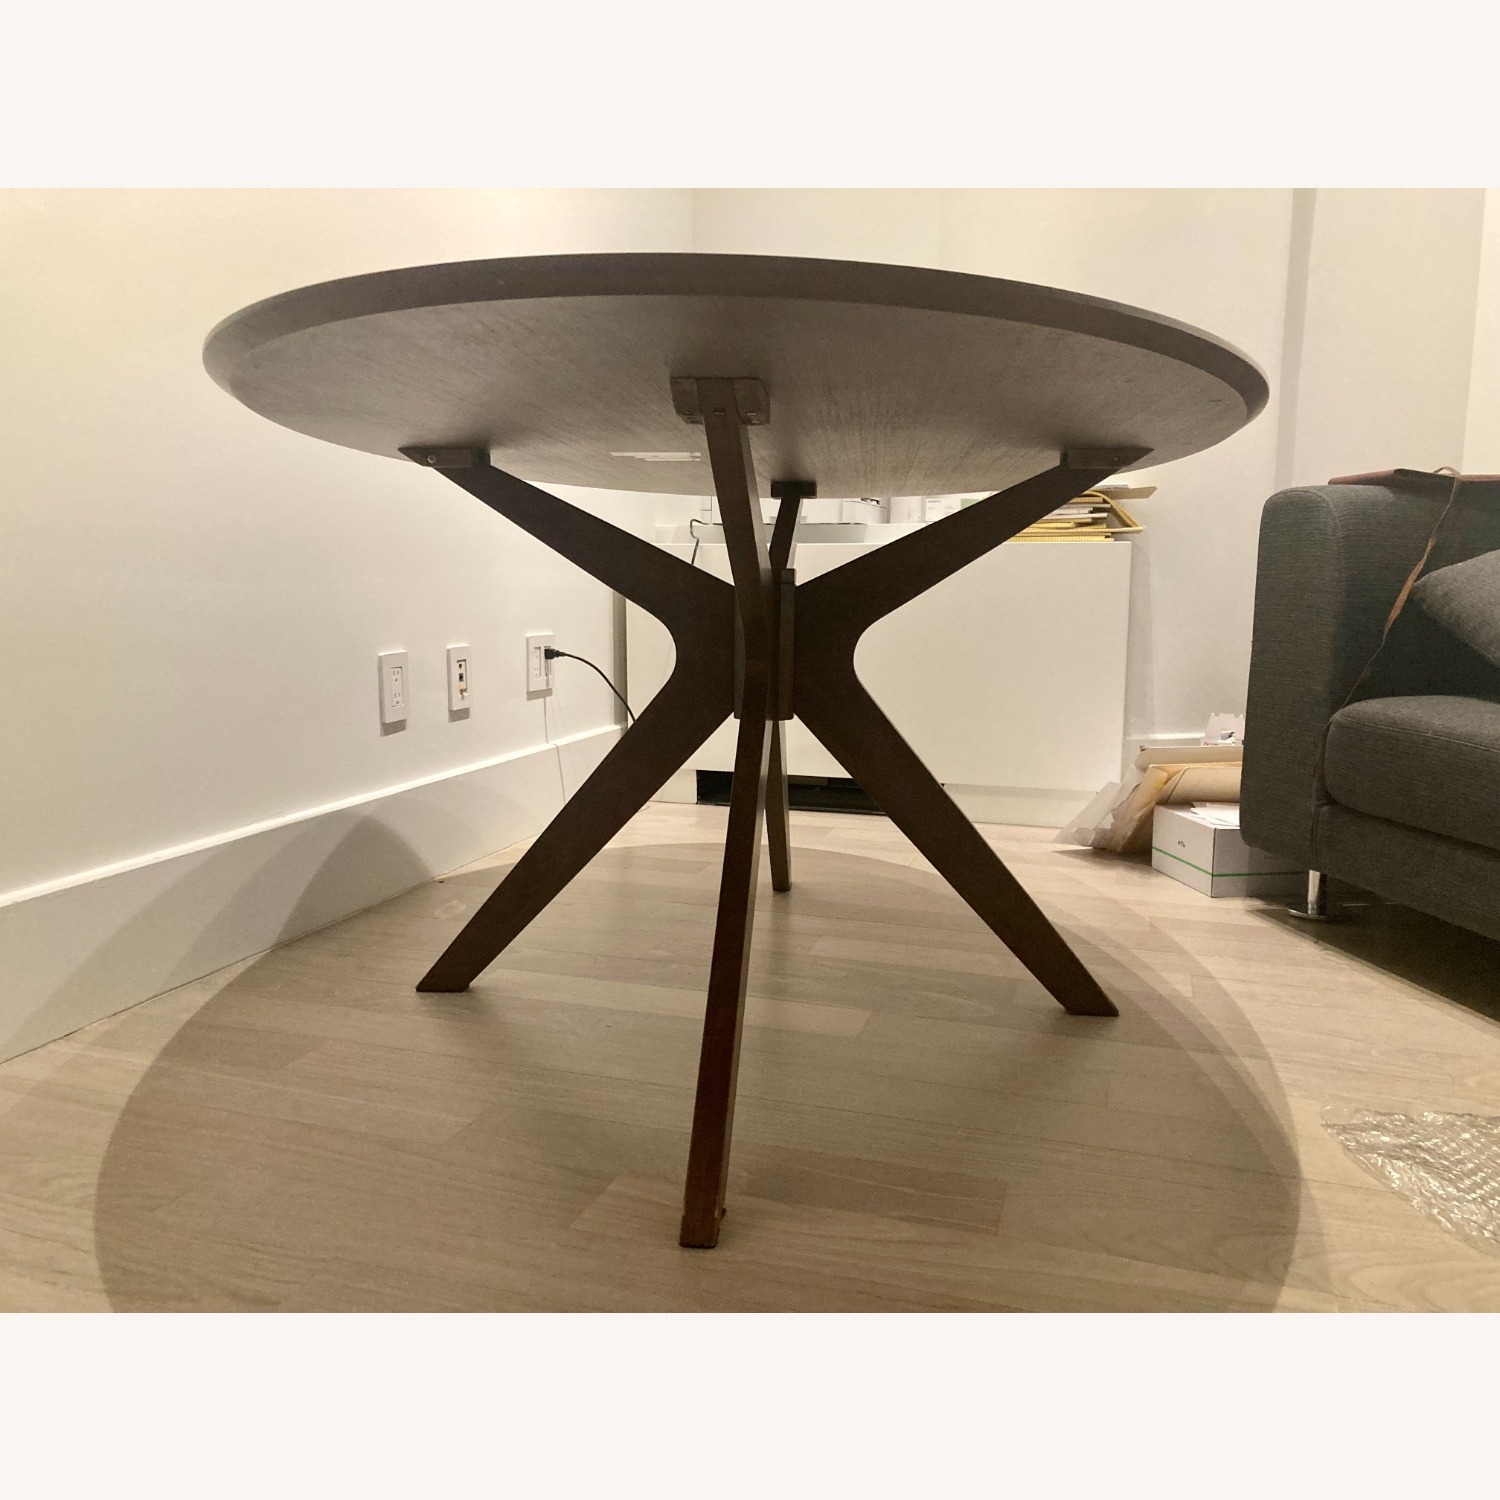 Article Conan Oval Dining Table - image-2